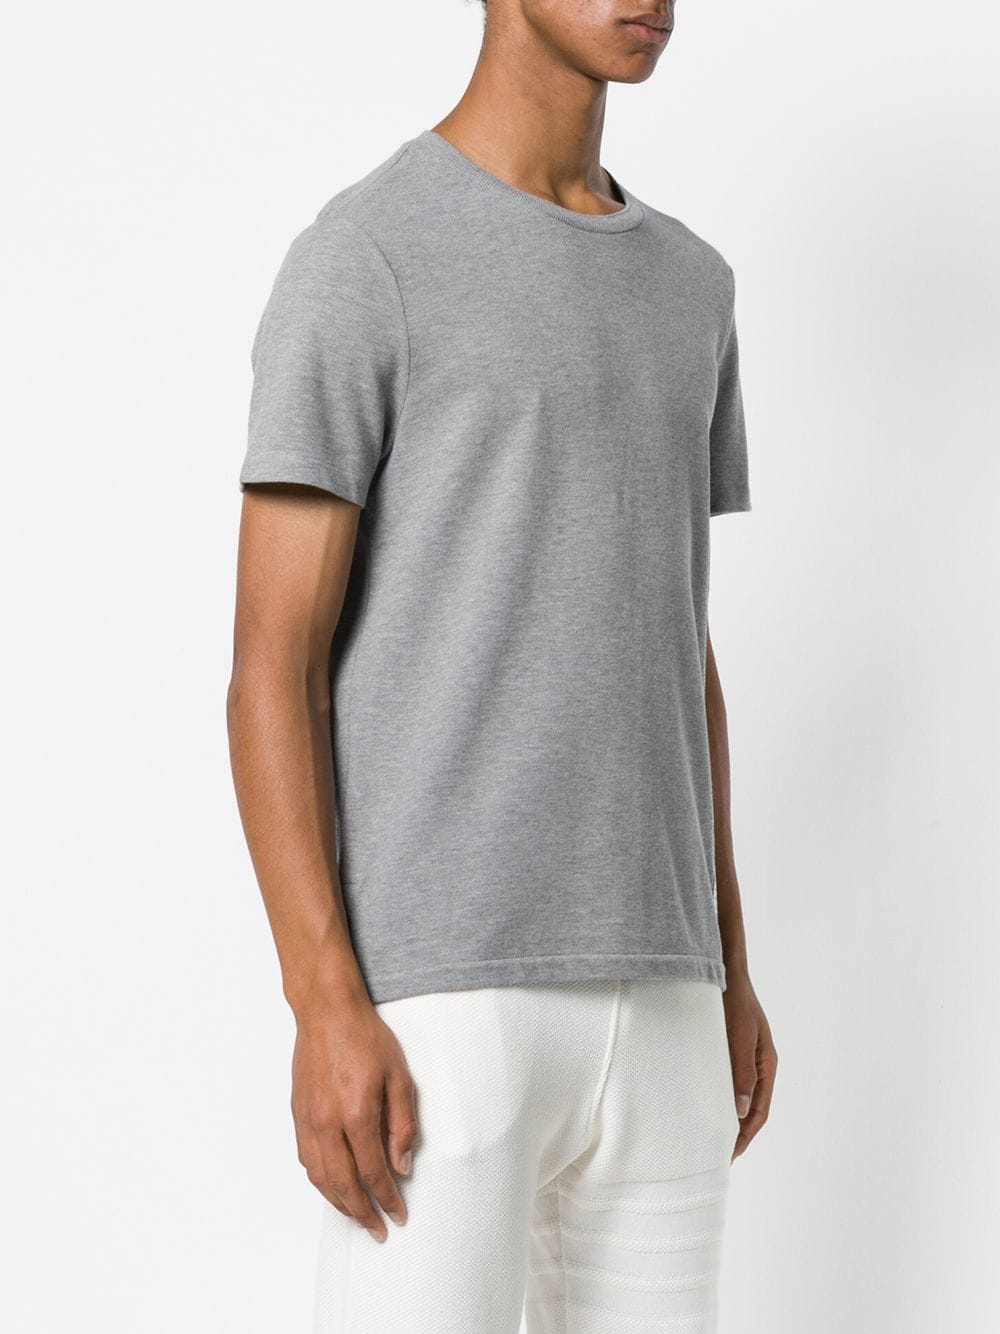 THOM BROWNE MEN RELAXED FIT SS TEE W/ CB RWB STRIPE IN CLASSIC PIQUE